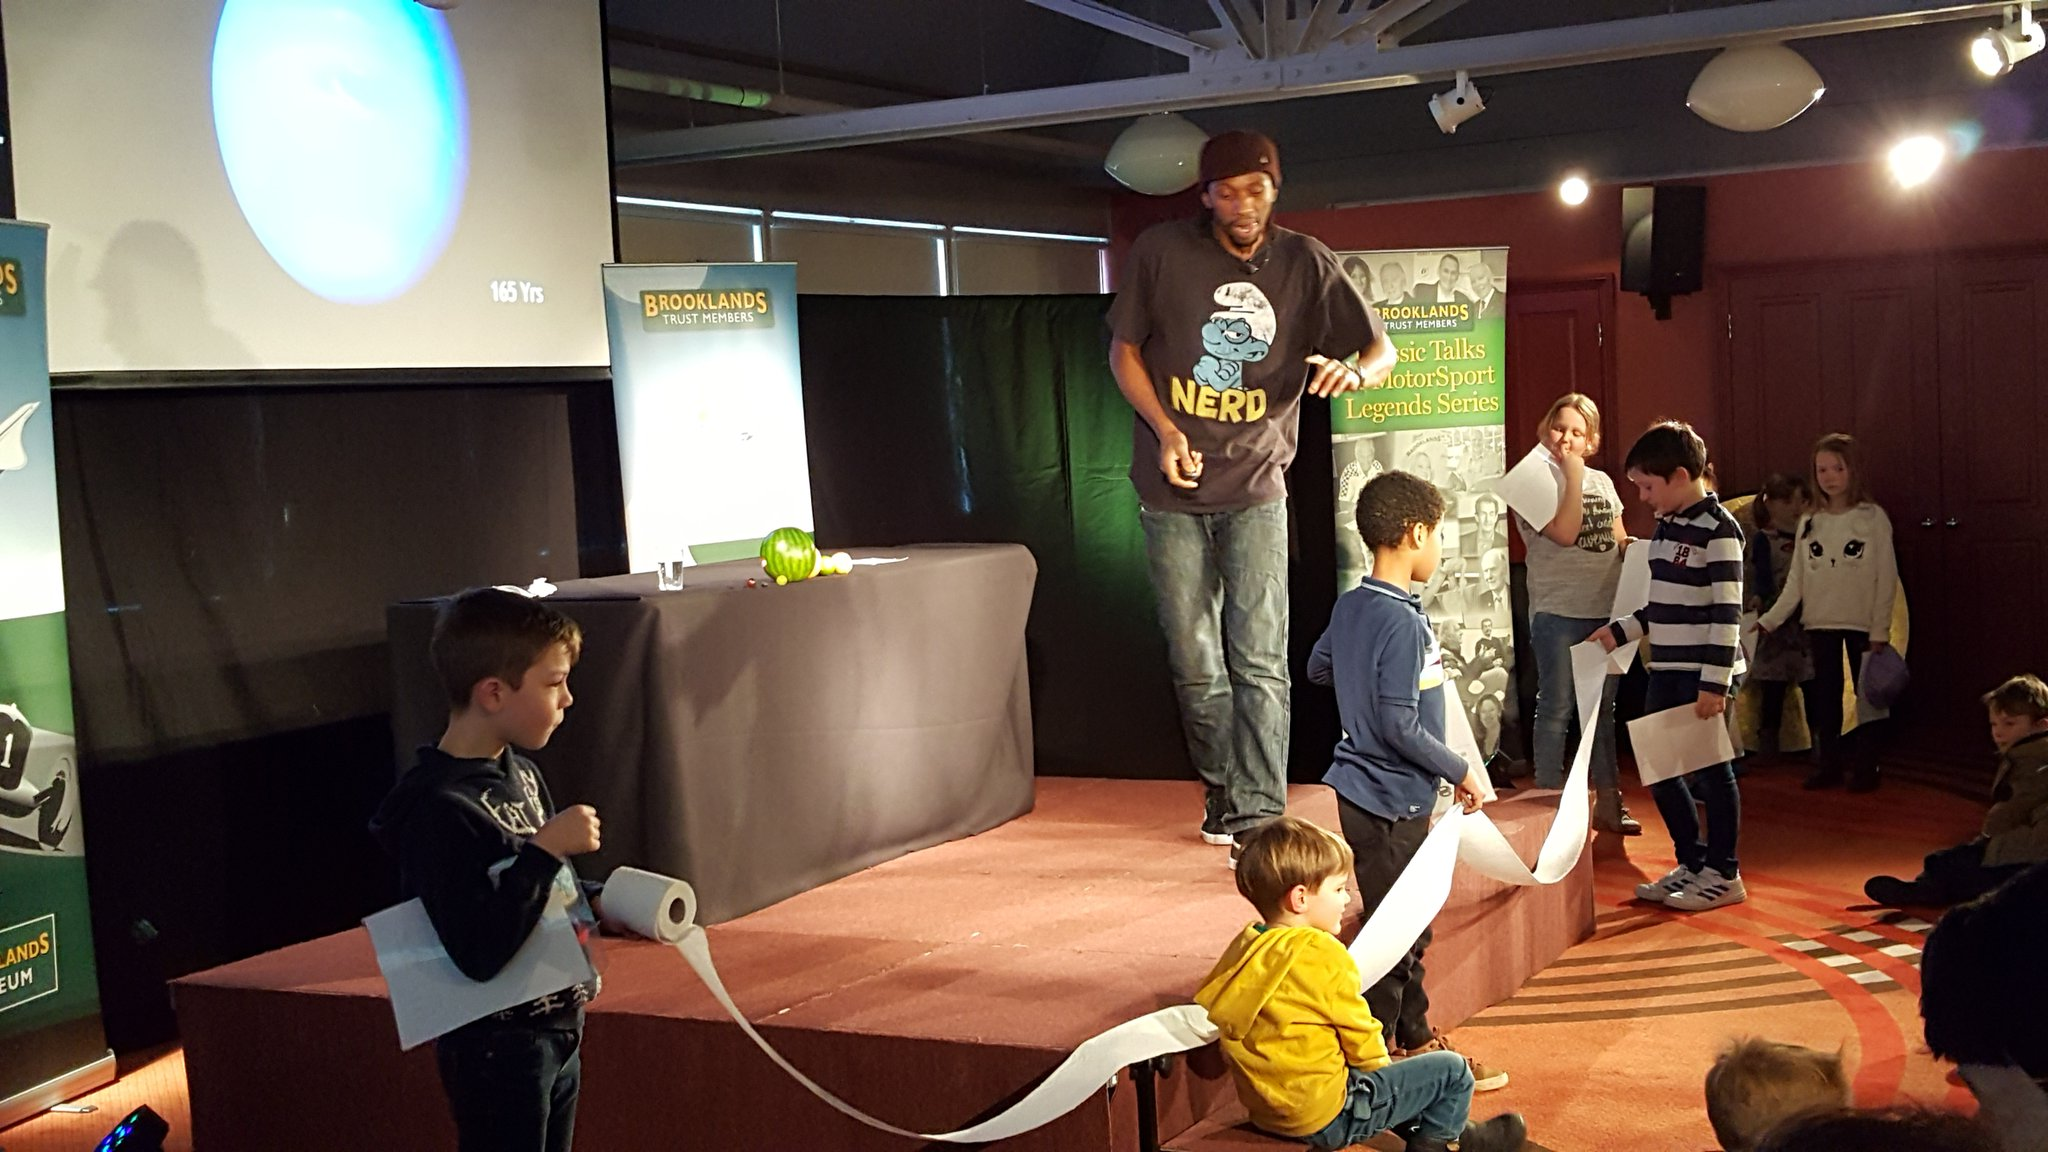 Brooklands Museum Solar System Science Event For Kids